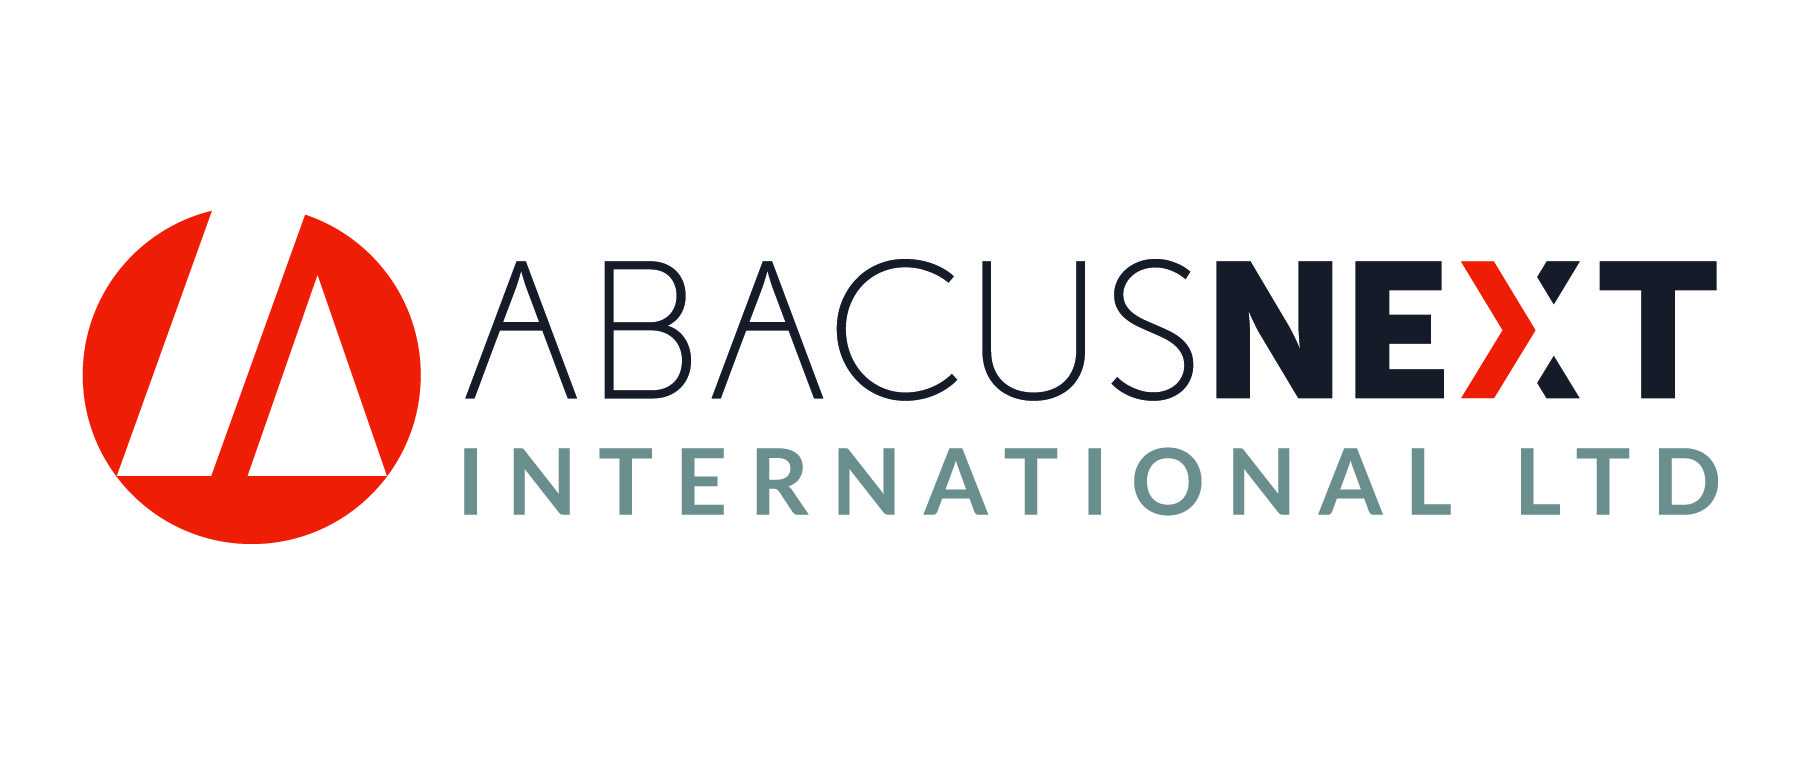 Corporate Golf Edinburgh AbacusNext International